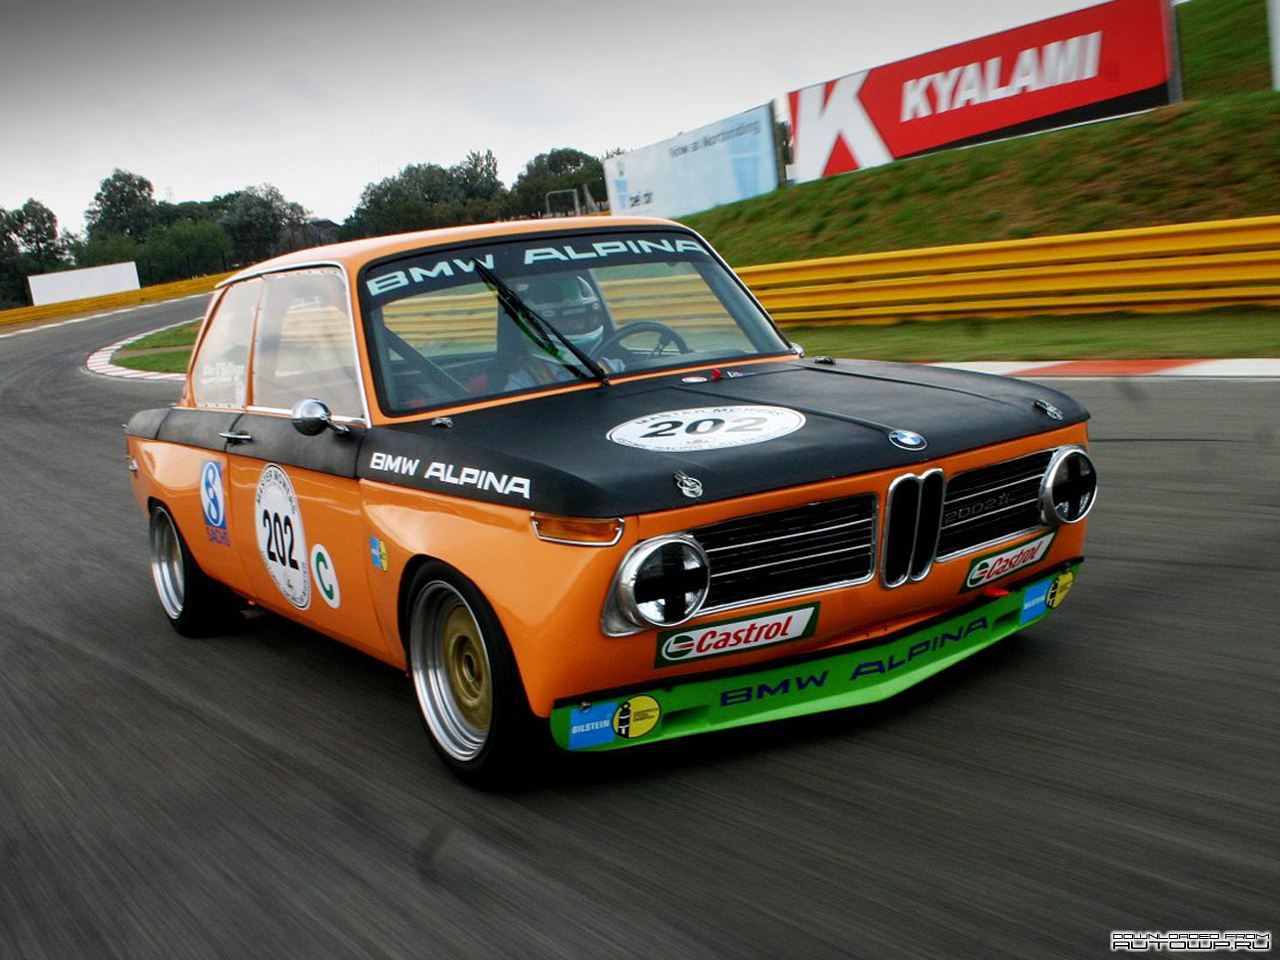 Bmw 2002 Tii Race Car >> Alpina 2002tii Race Car (E10) photos - PhotoGallery with 2 pics | CarsBase.com - Cars Pictures